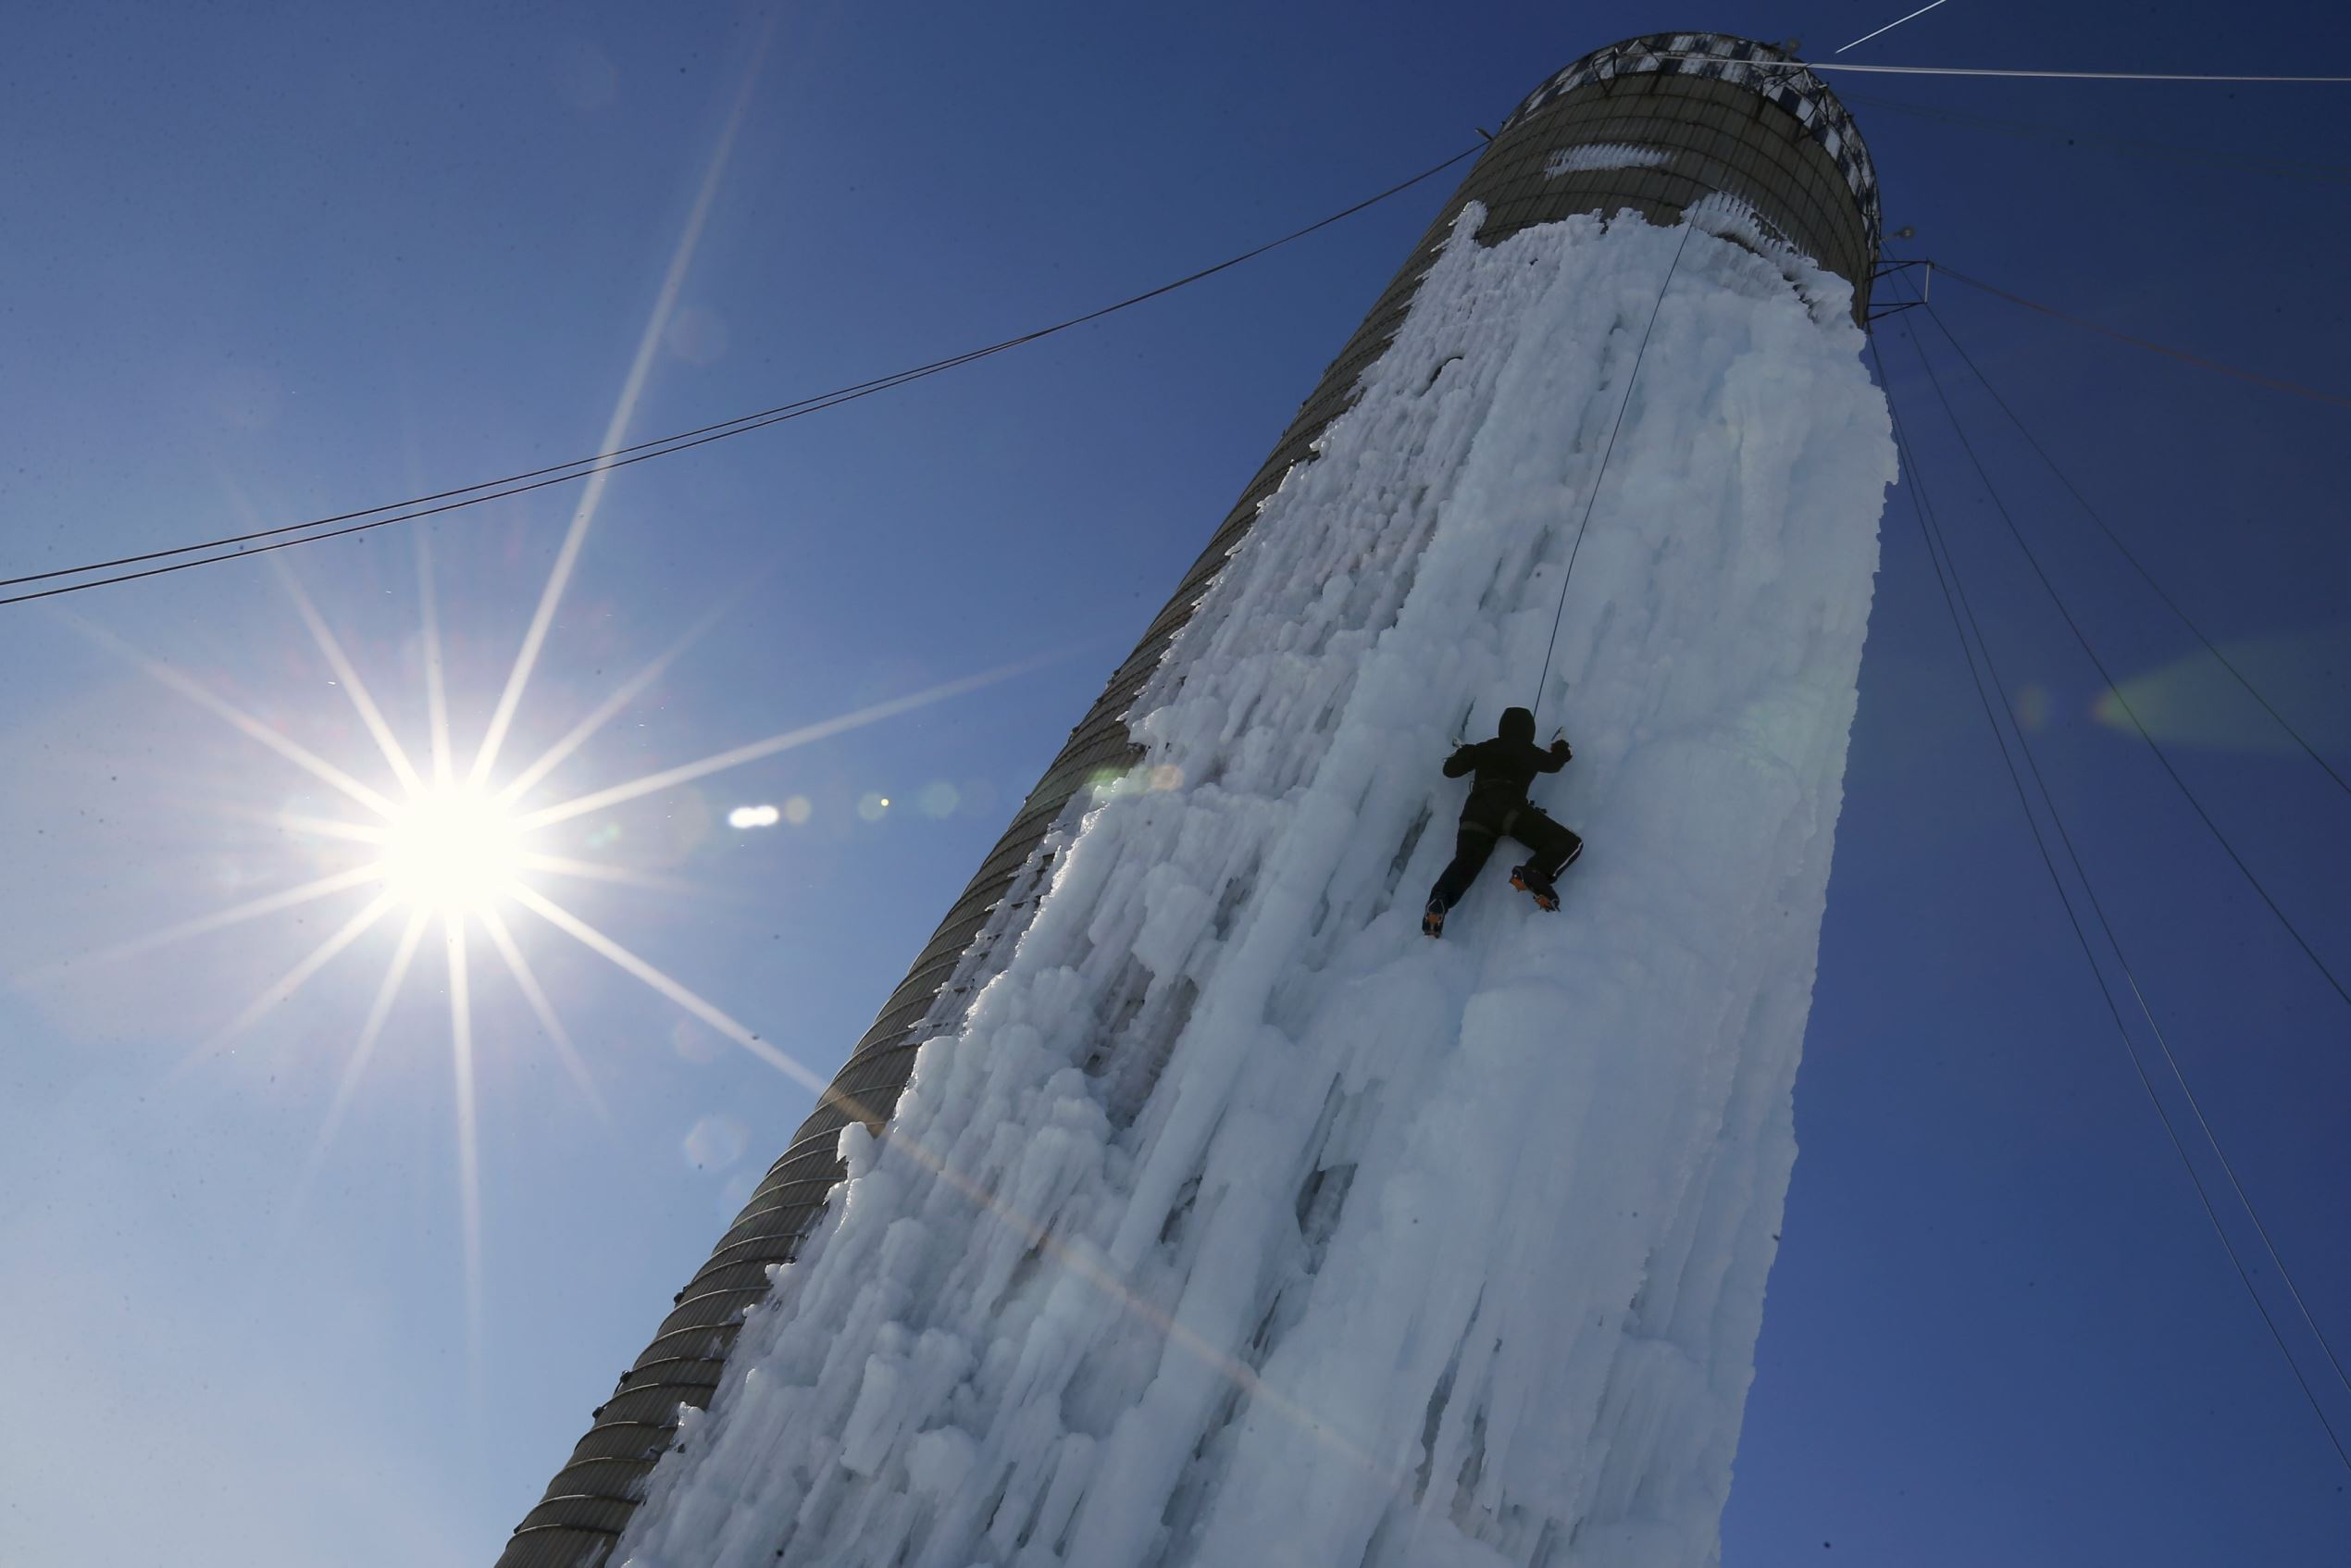 Слайд 9 из 86: An climber ascends a silo covered in ice in Cedar Falls, Iowa, United States, January 17, 2016. The owners have connected hoses to the top of the silo and spray it with water in winter months to freeze the exterior for climbing. REUTERS/Jim Young TPX IMAGES OF THE DAY ...